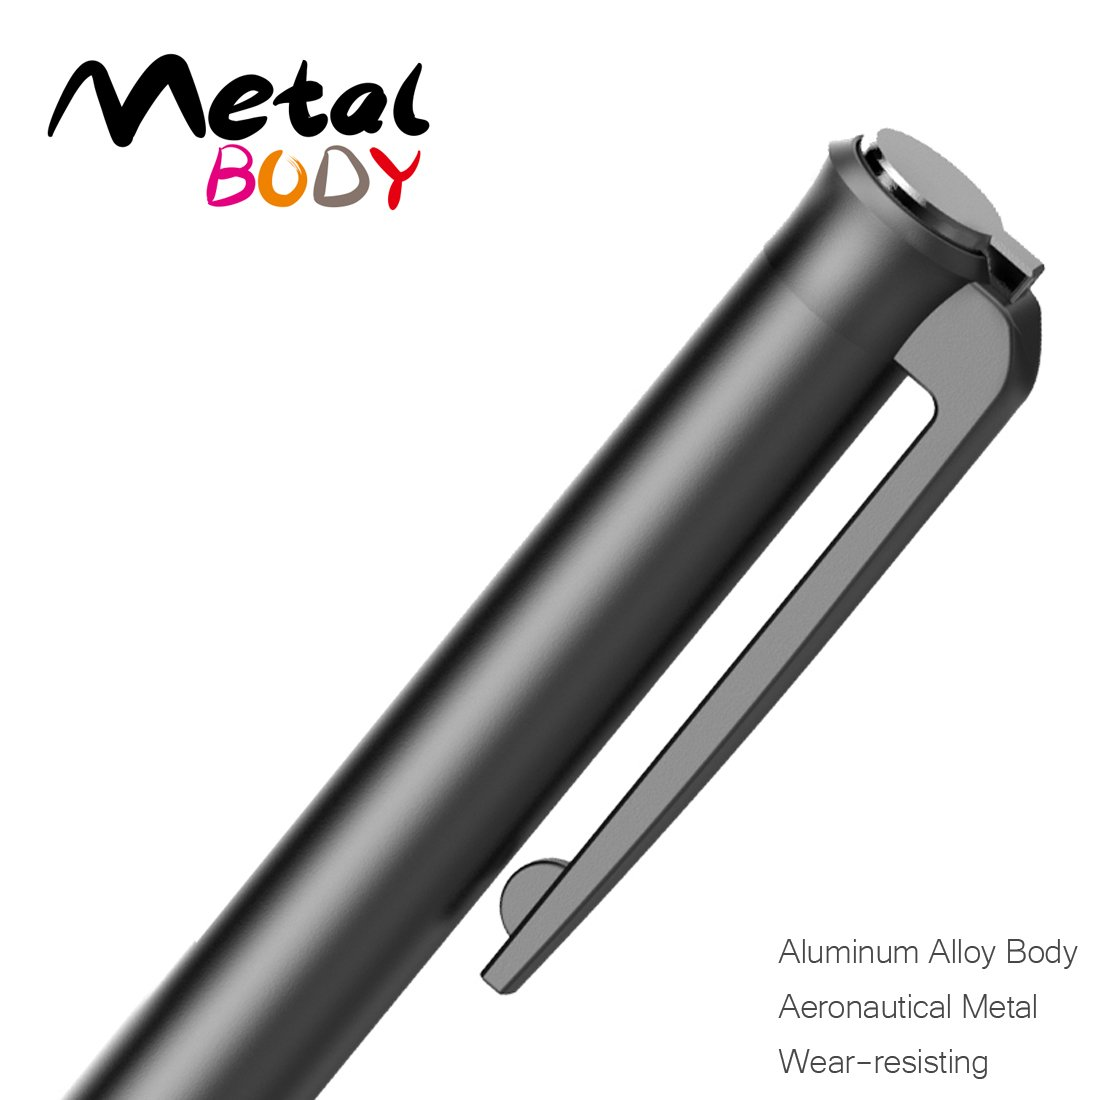 HAHAKEE iPad Stylus Pen, No Bluetooth Connection, Support 40hrs Working & 30Days Standby, High Precision Rechargeable Stylus for ipad Series, Passed FCC Certification by HAHAKEE-life (Image #3)